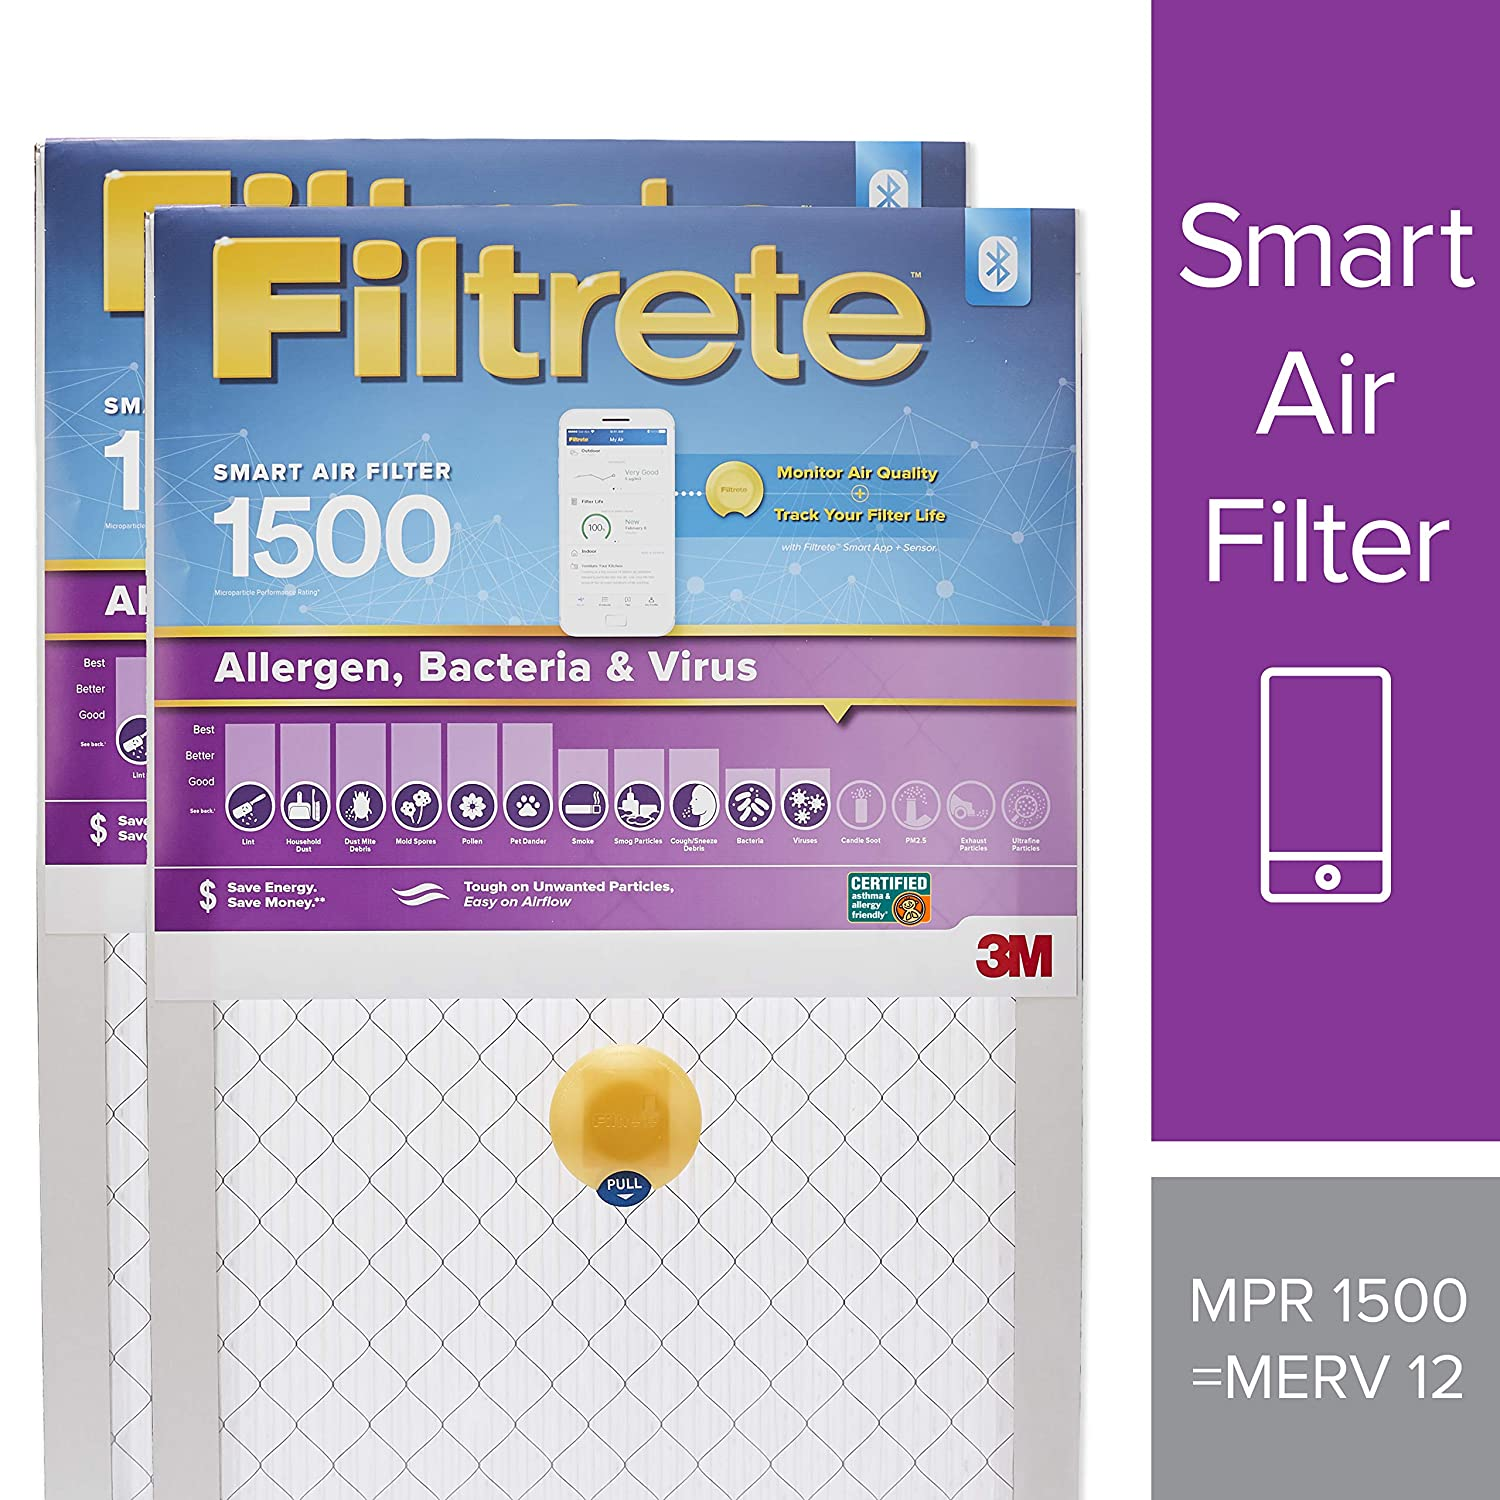 Filtrete 20x25x1 Smart Air Filter, MPR 1500, Allergen, Bacteria & Virus AC Furnace Air Filter,